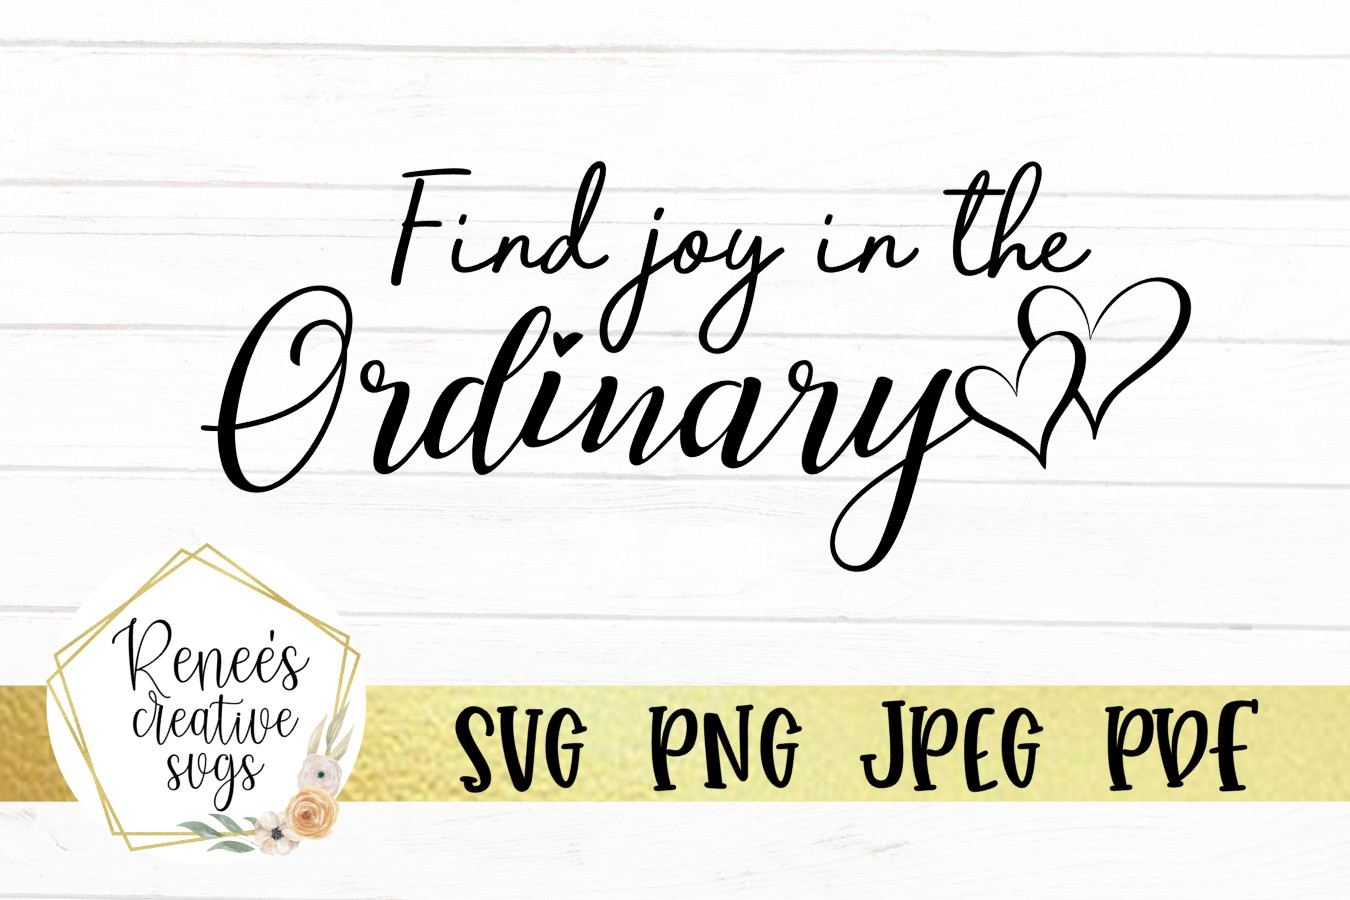 Find joy in the Ordinary |Motivational Quote SVG | SVG File example image 2